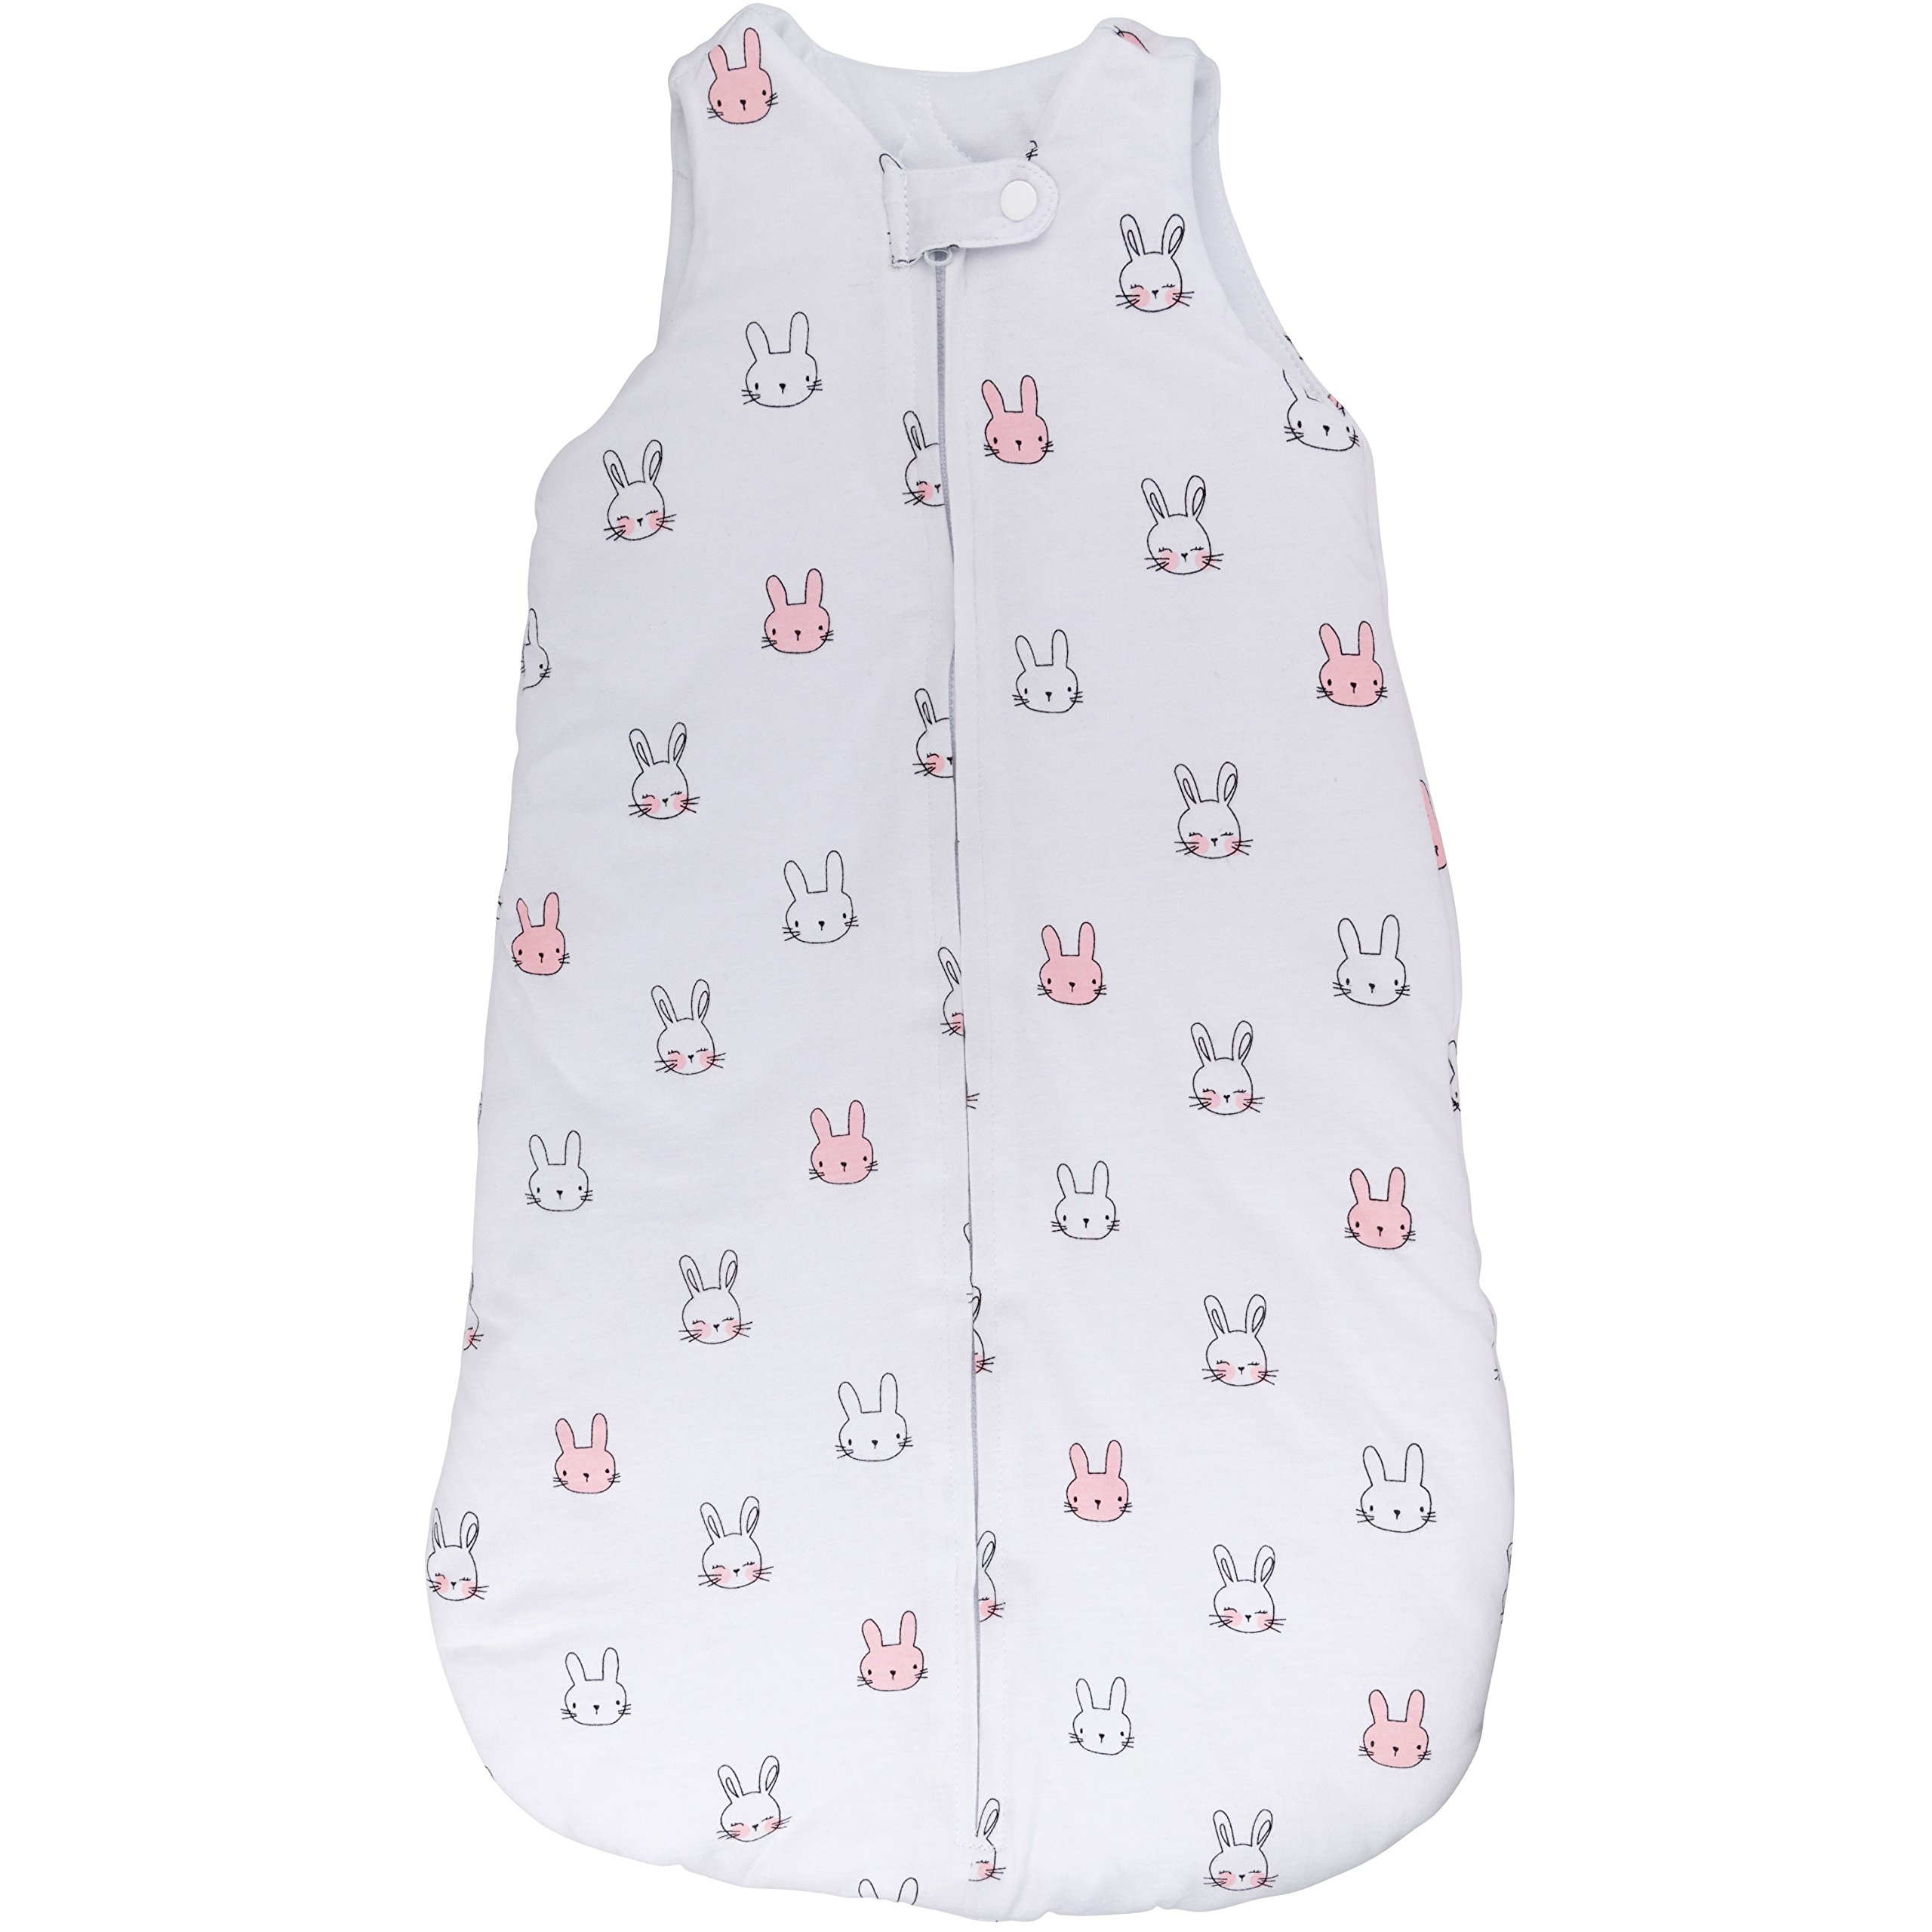 Baby Wearable Blanket- Sleep Bag Winter Weight Pink Bunnies for Baby Girl (0-3 Months) by Ely's & Co by Ely's & Co